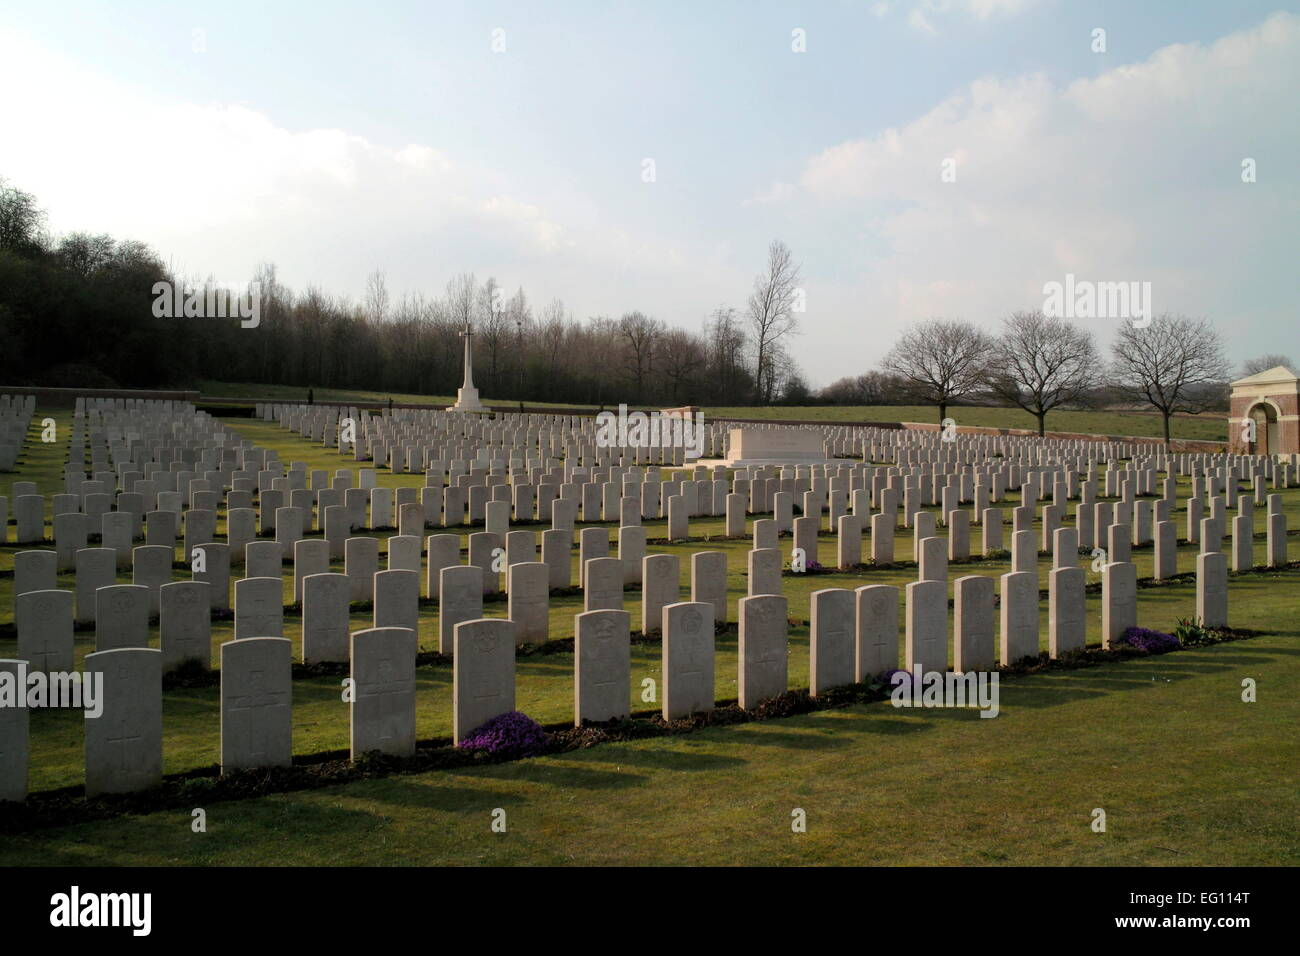 AJAXNETPHOTO. FLATIRON COPSE, SOMME, FRANCE. - WAR GRAVES - FLATIRON COPSE MILITARY CEMETERY, CONTAINS THE GRAVES - Stock Image